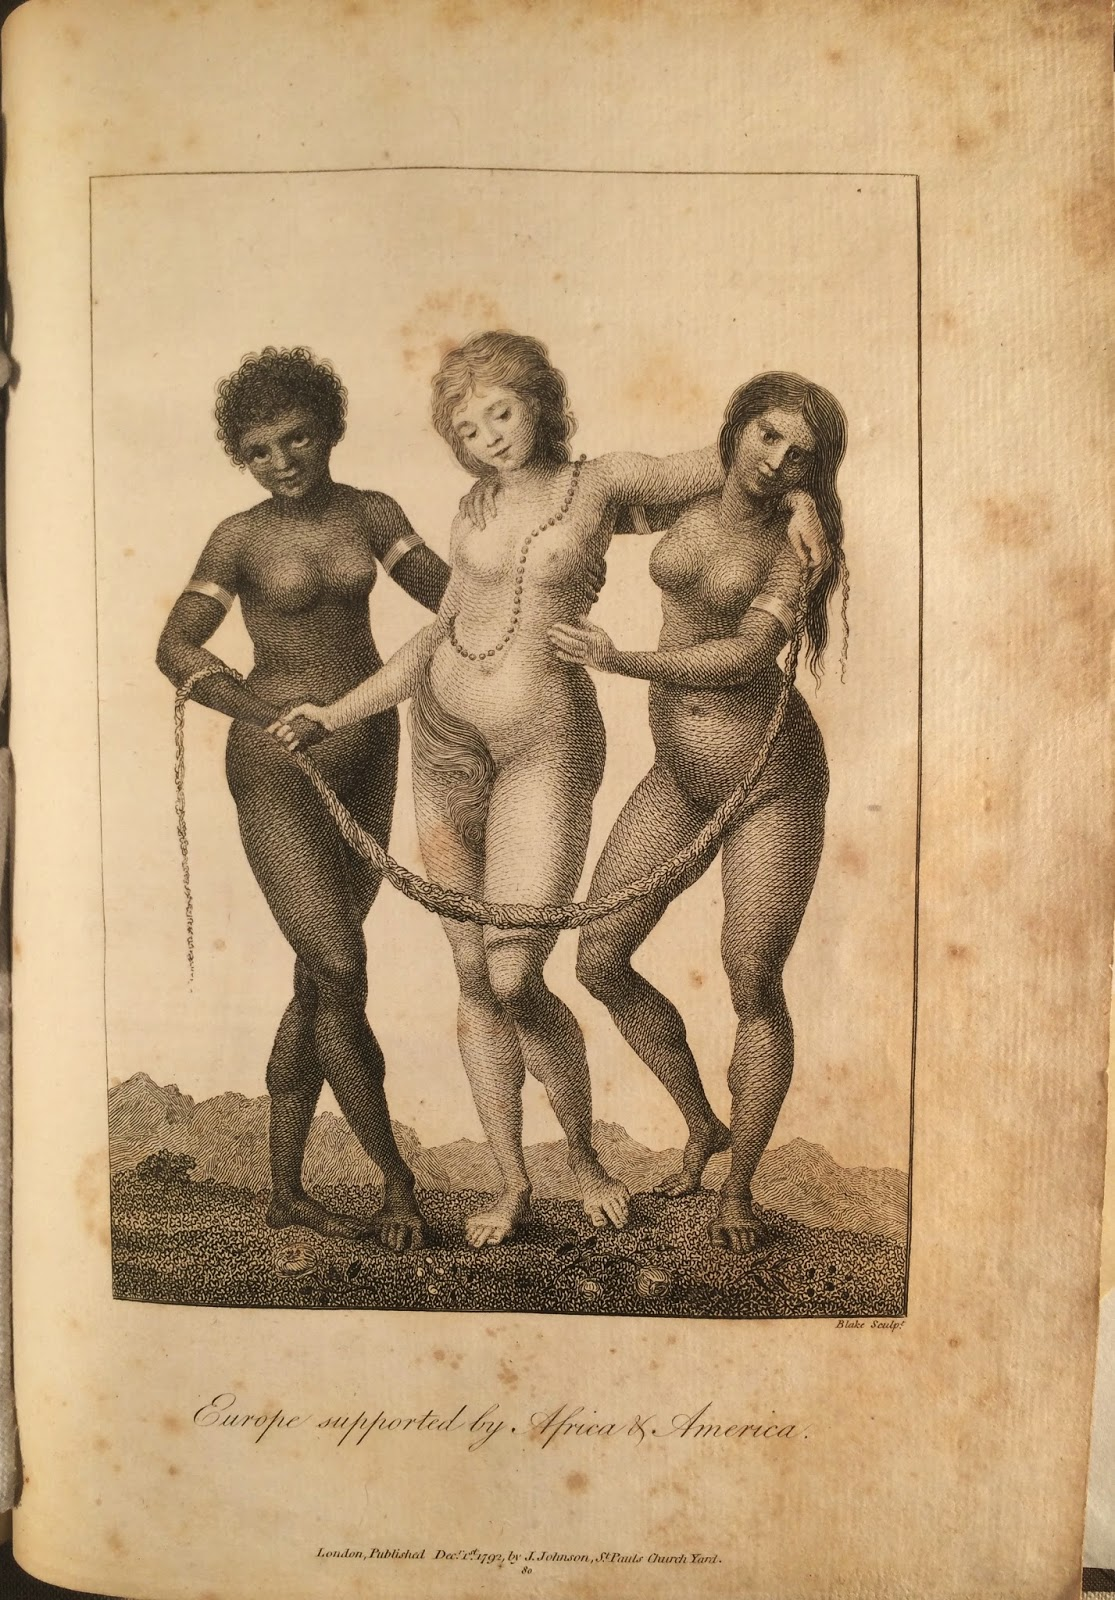 """A full-page illustration showing a three nude women, one European being physically supported by one African and one Native. The caption is """"Europe supported by Africa and America."""""""